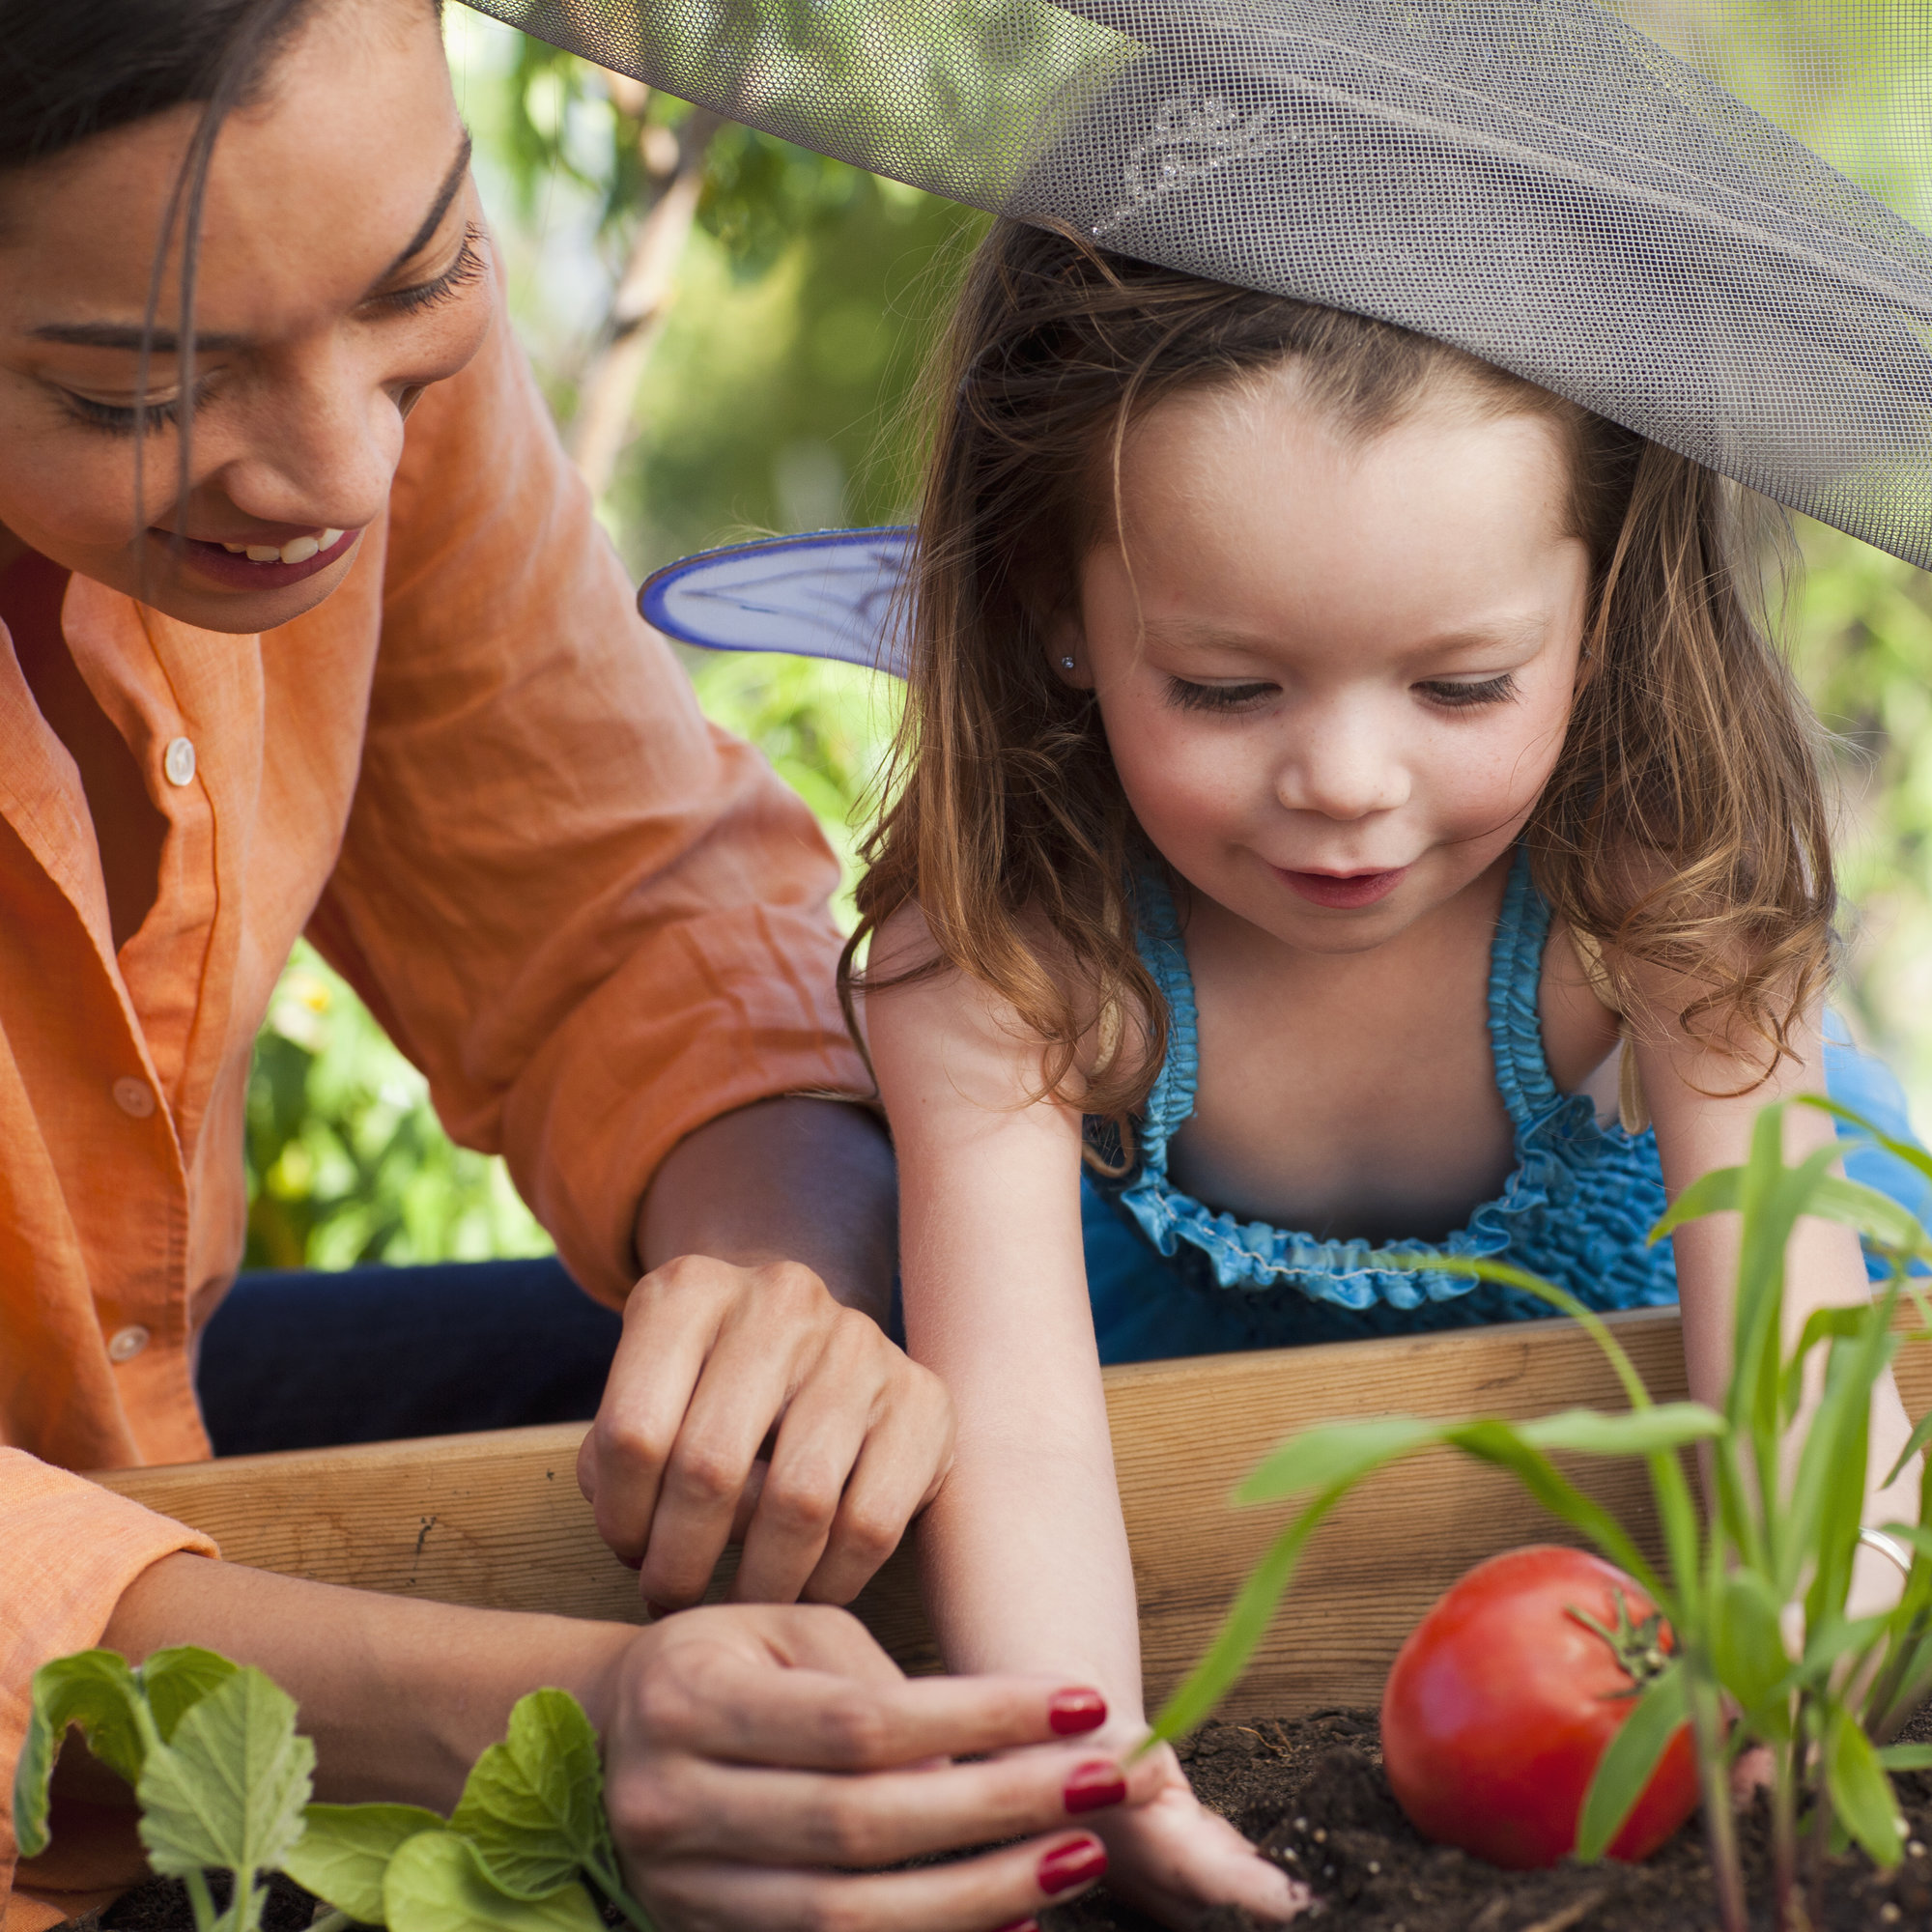 Kids Are Eating Healthier, But There's Still Room for Improvement